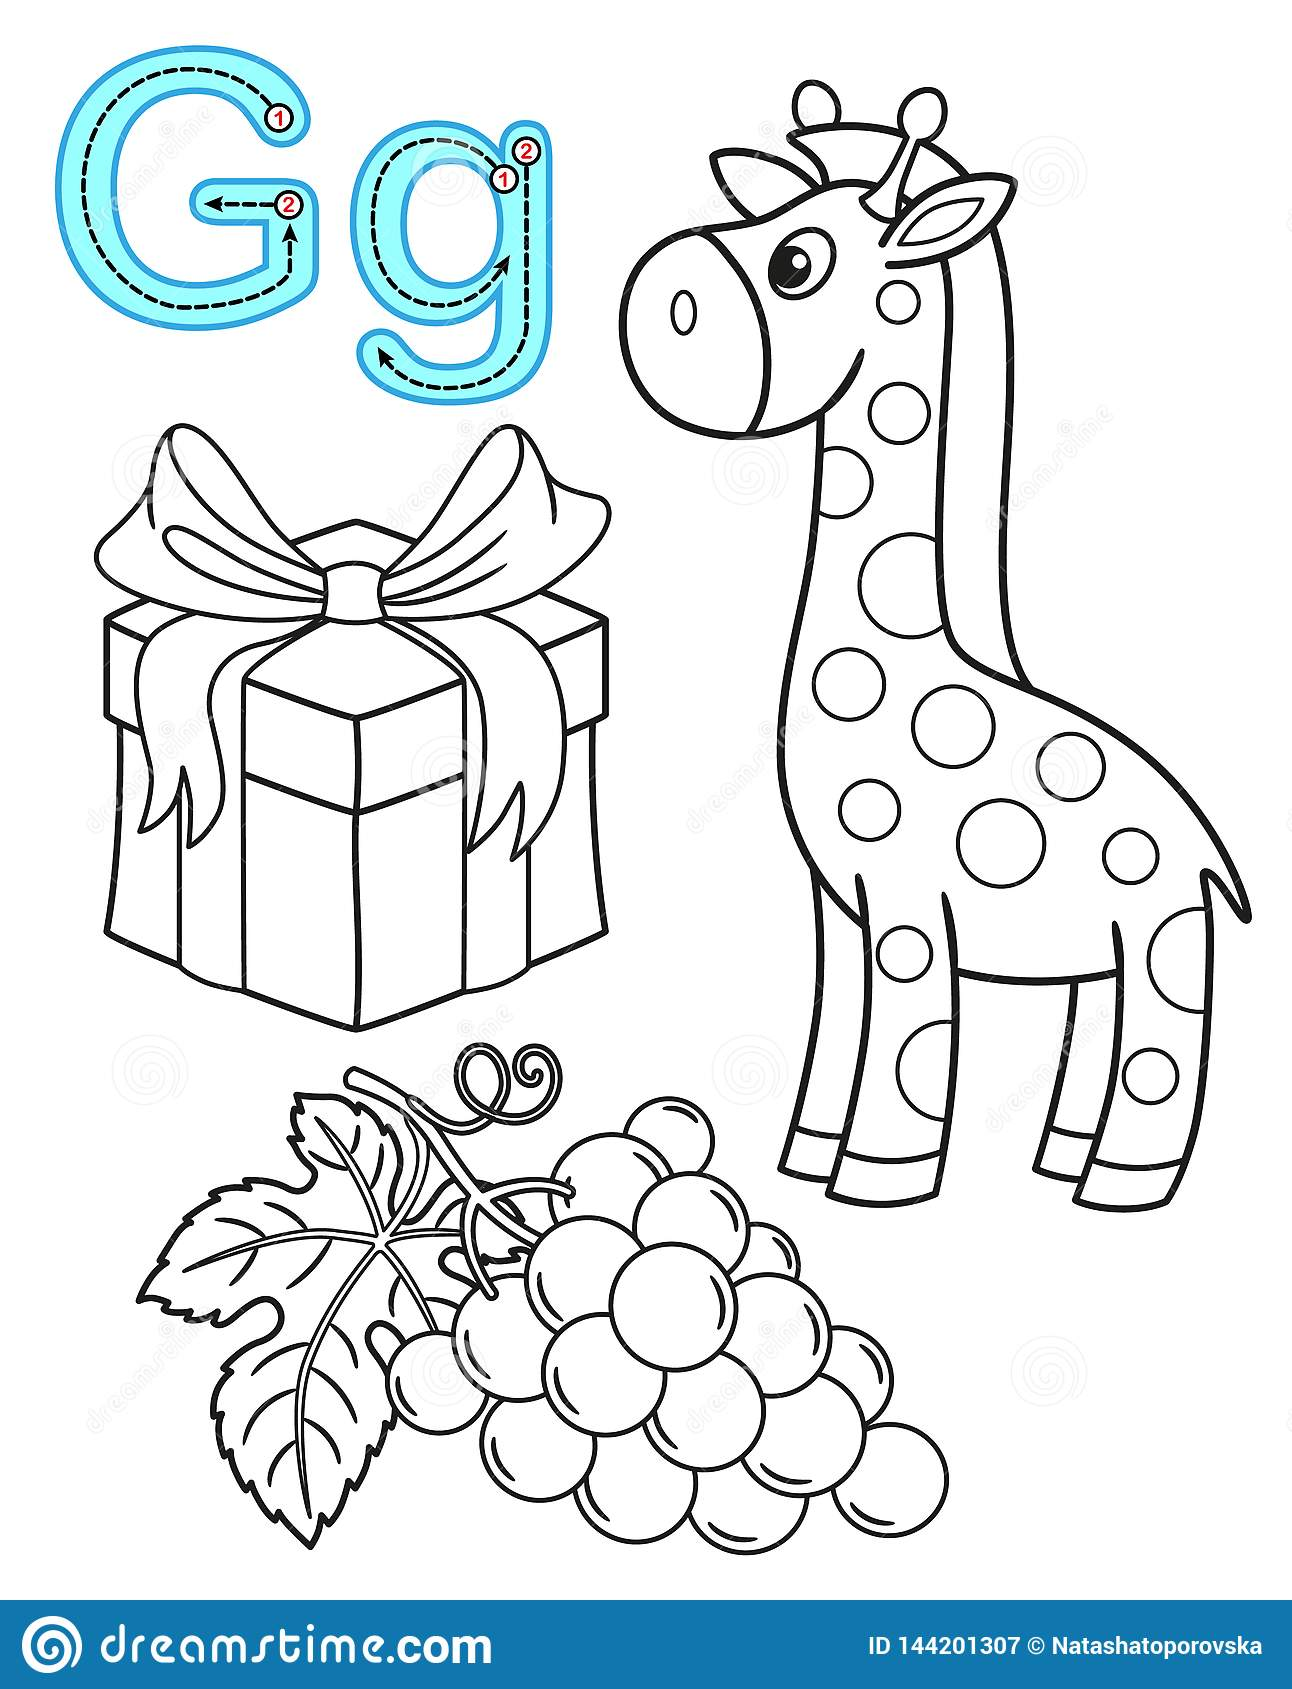 Printable Coloring Page For Kindergarten And Preschool Card For Study English Vector Coloring